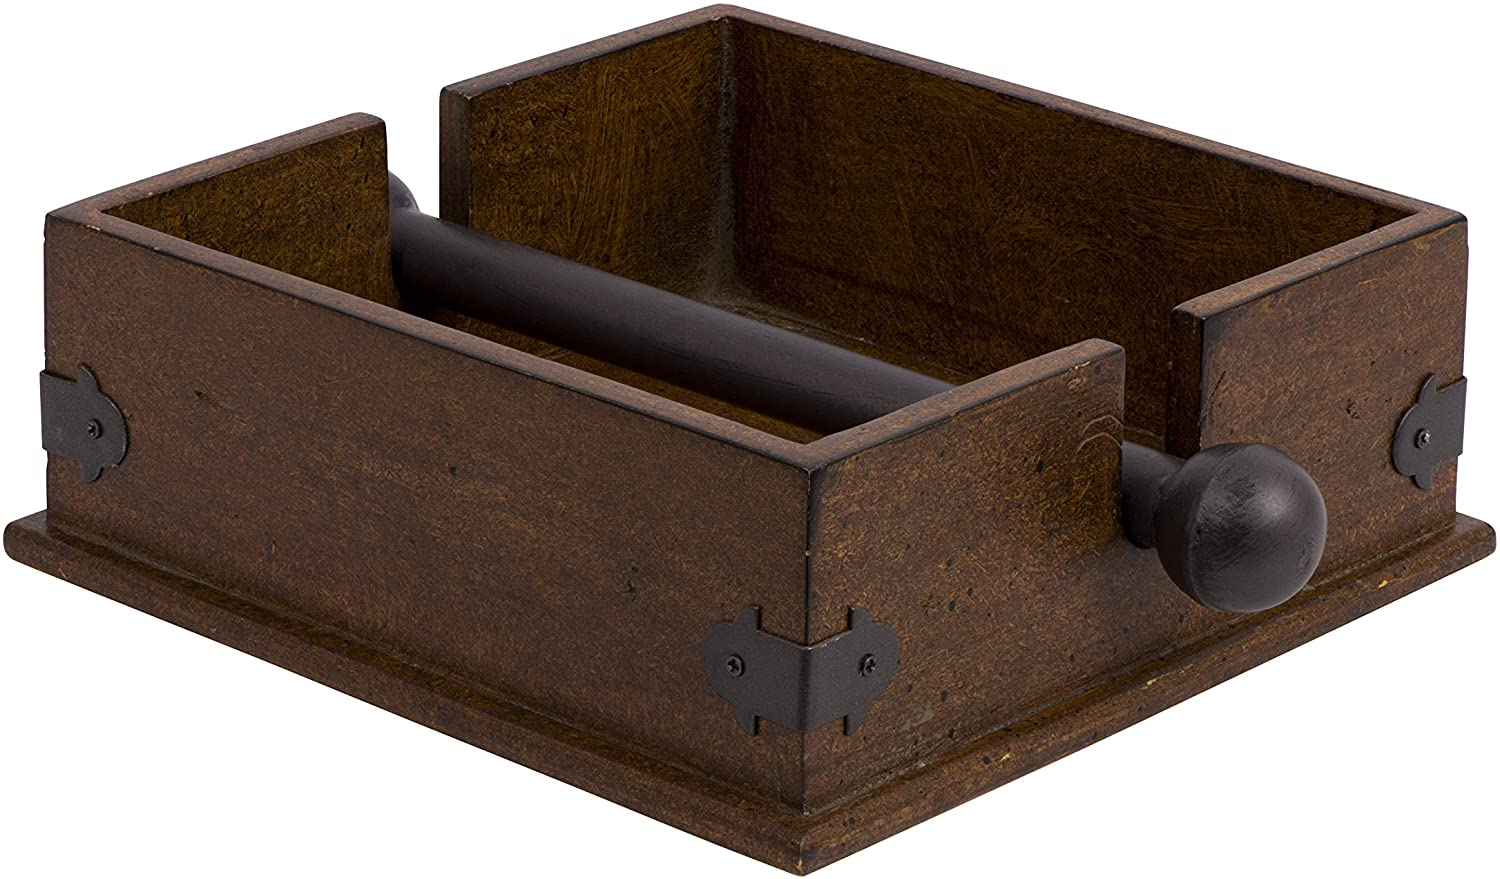 Creative Co-op CG0232 Square Wood Napkin Holder With Metal Bar, Large, brown